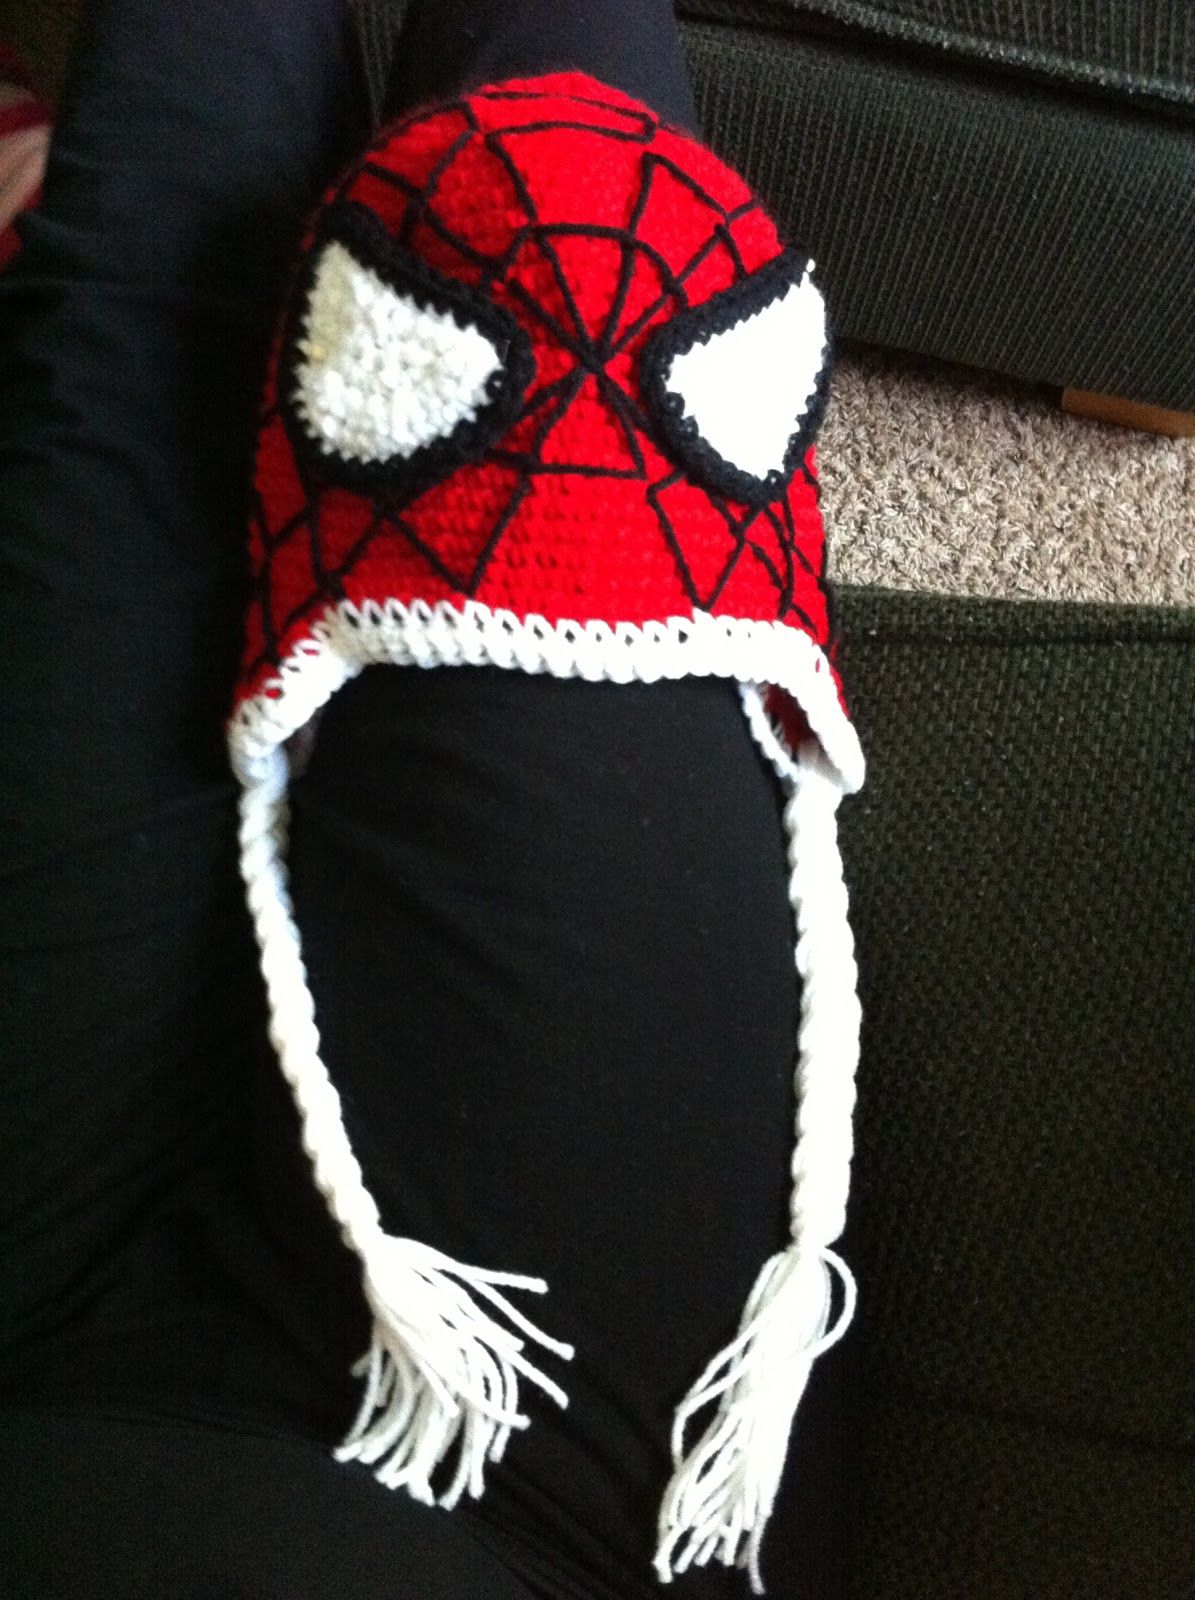 Spiderman Knitted Blanket Free Pattern | Pinterest | Spiderman, Free ...